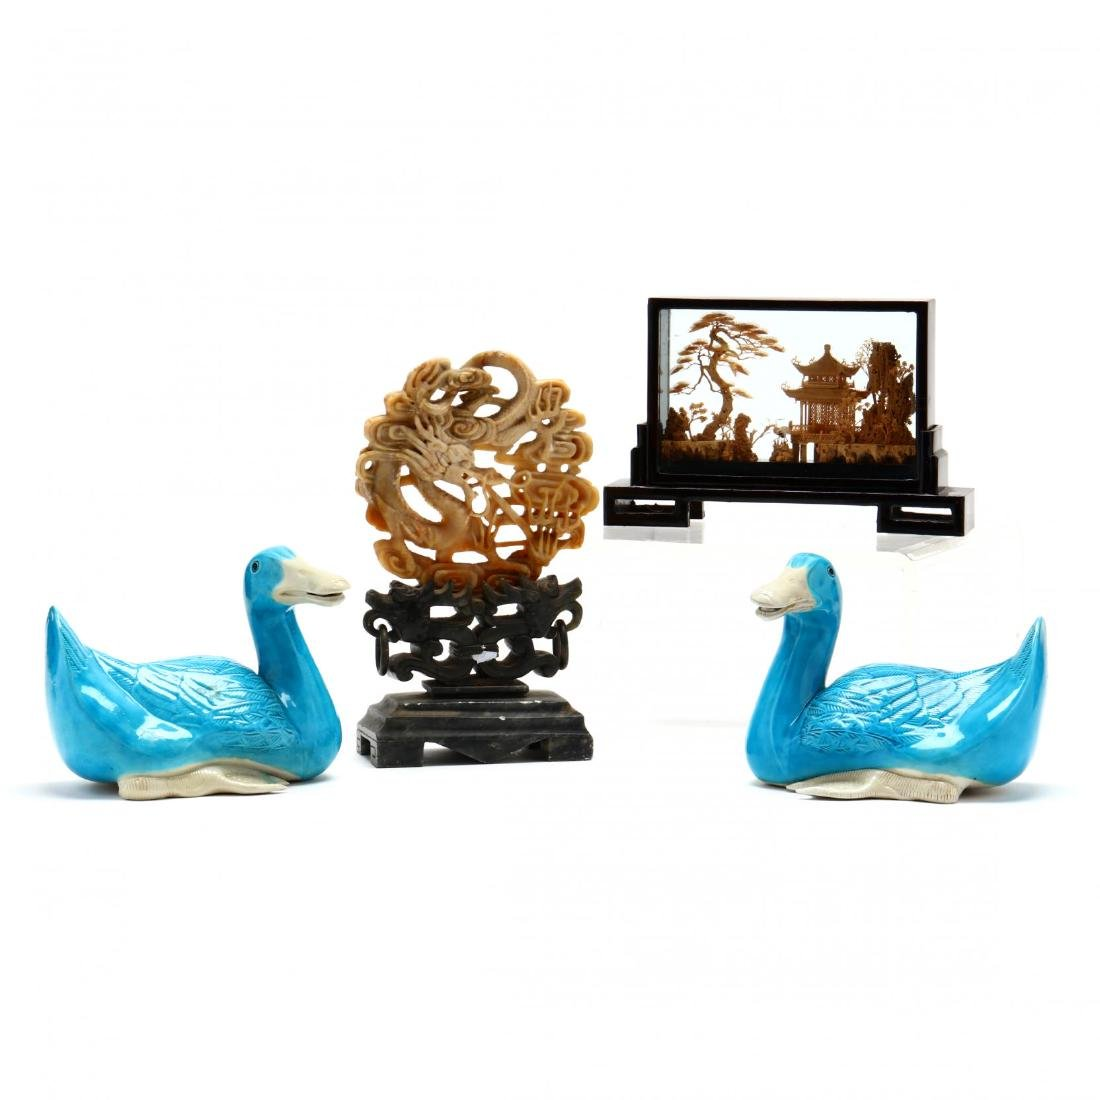 Chinese Decorative Accessory Grouping